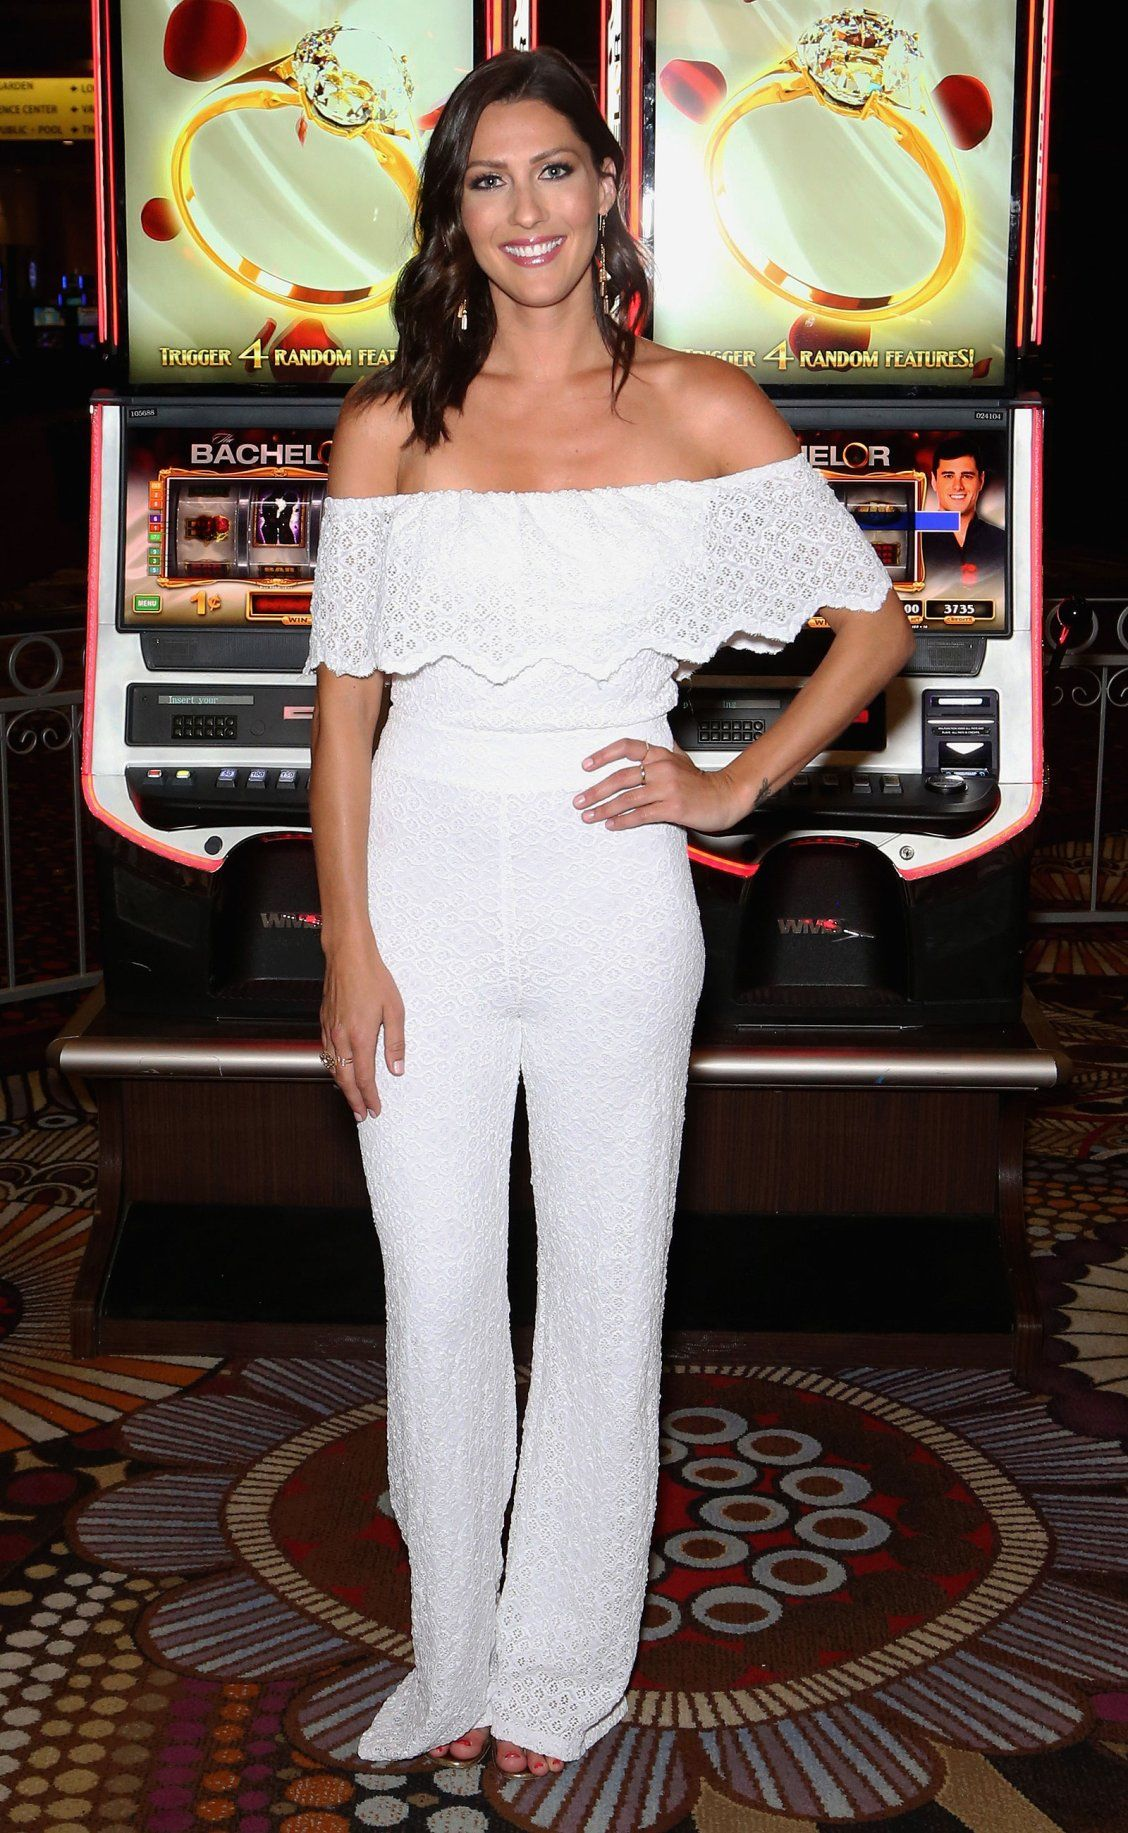 dd683ee3be88 White jumpsuit - click through for more date outfit ideas from The Bachelorette  Becca Kufrin!